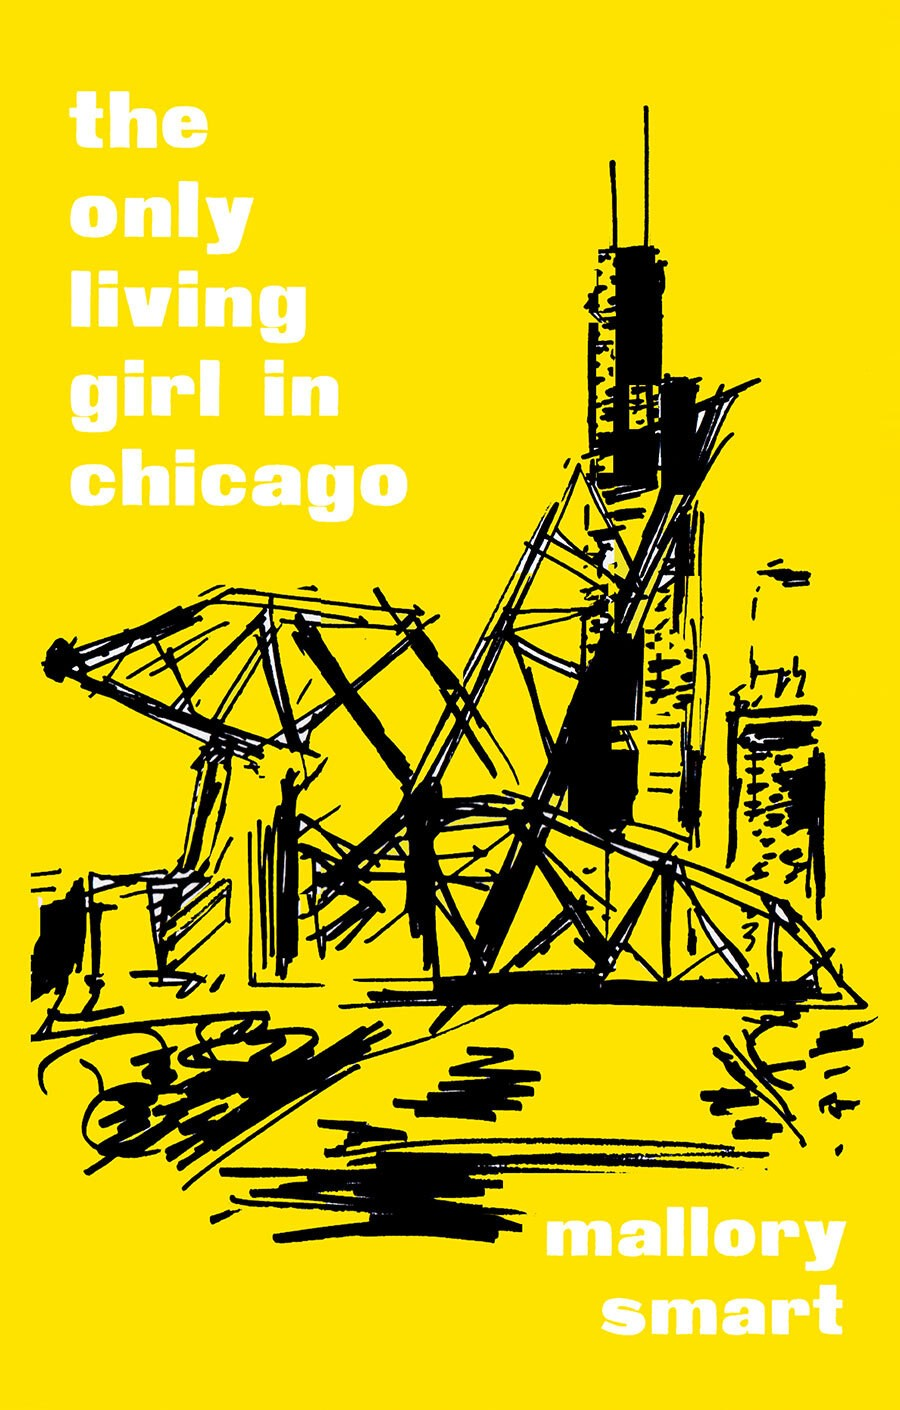 The cover art for Mallory Smart's forthcoming book, <i>The Only Living Girl in Chicago</i>, due out in August 2021 by Colorado's Trident Press.